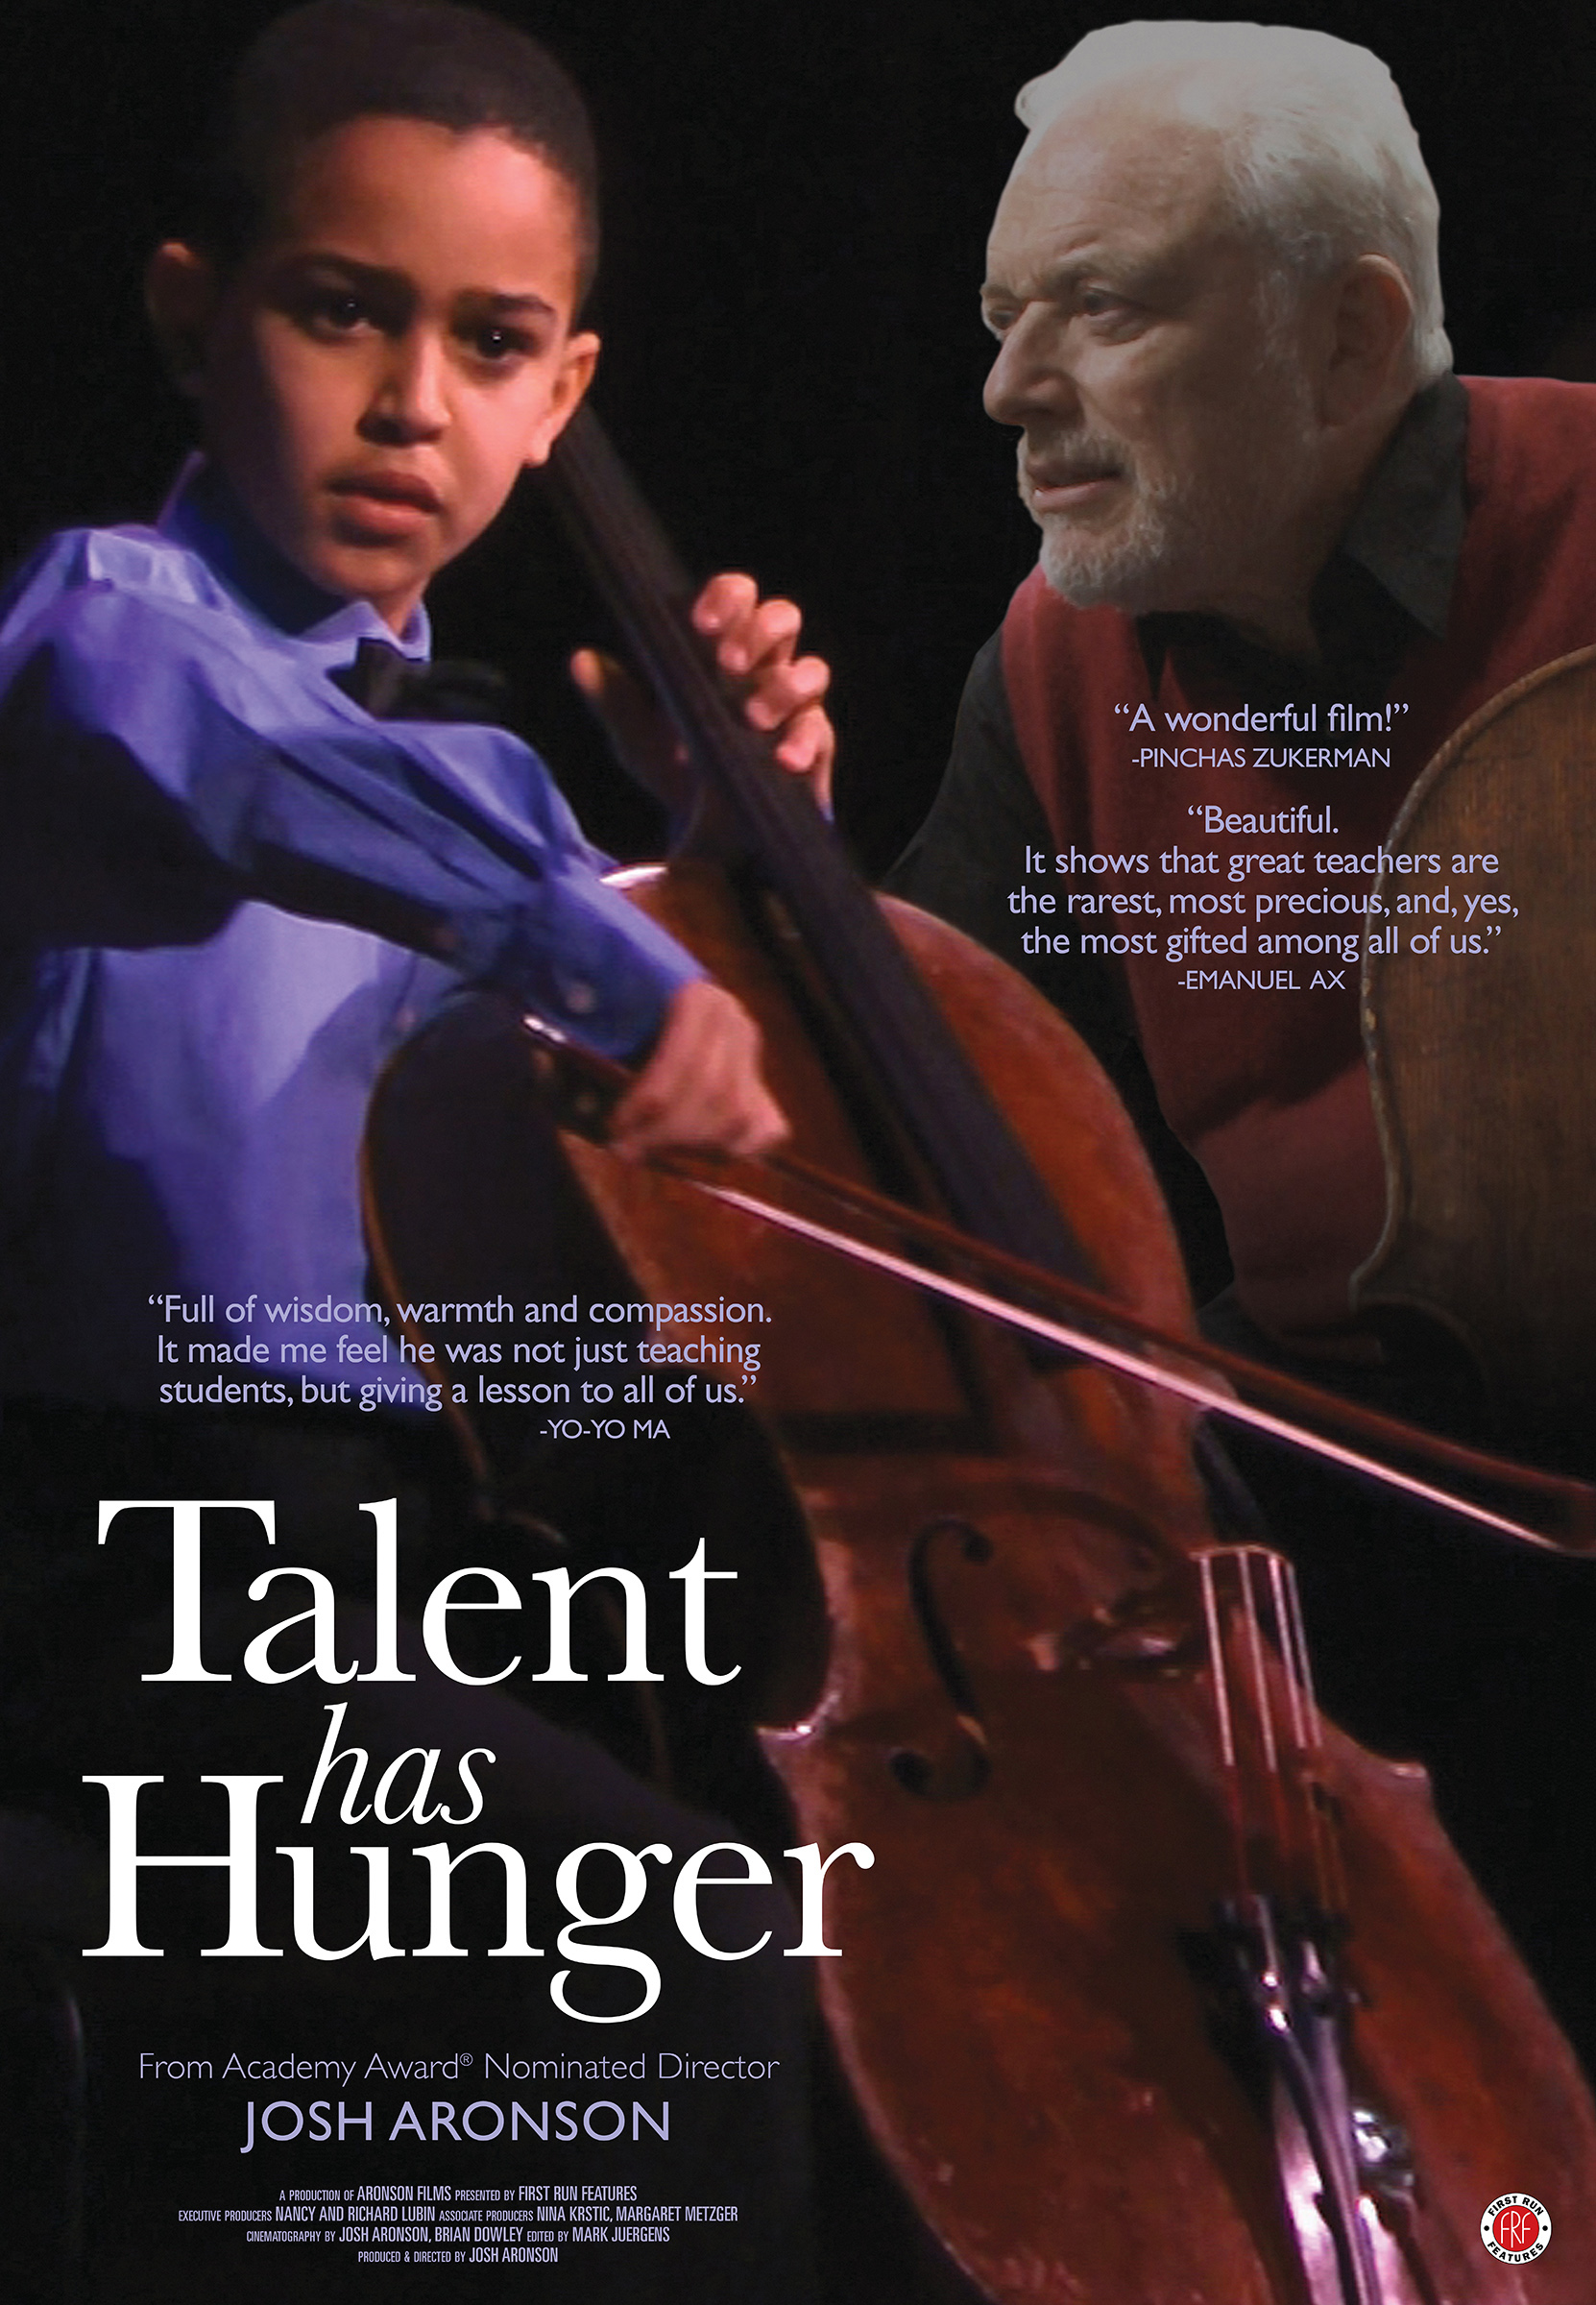 TALENT HAS HUNGER FILM REVIEW